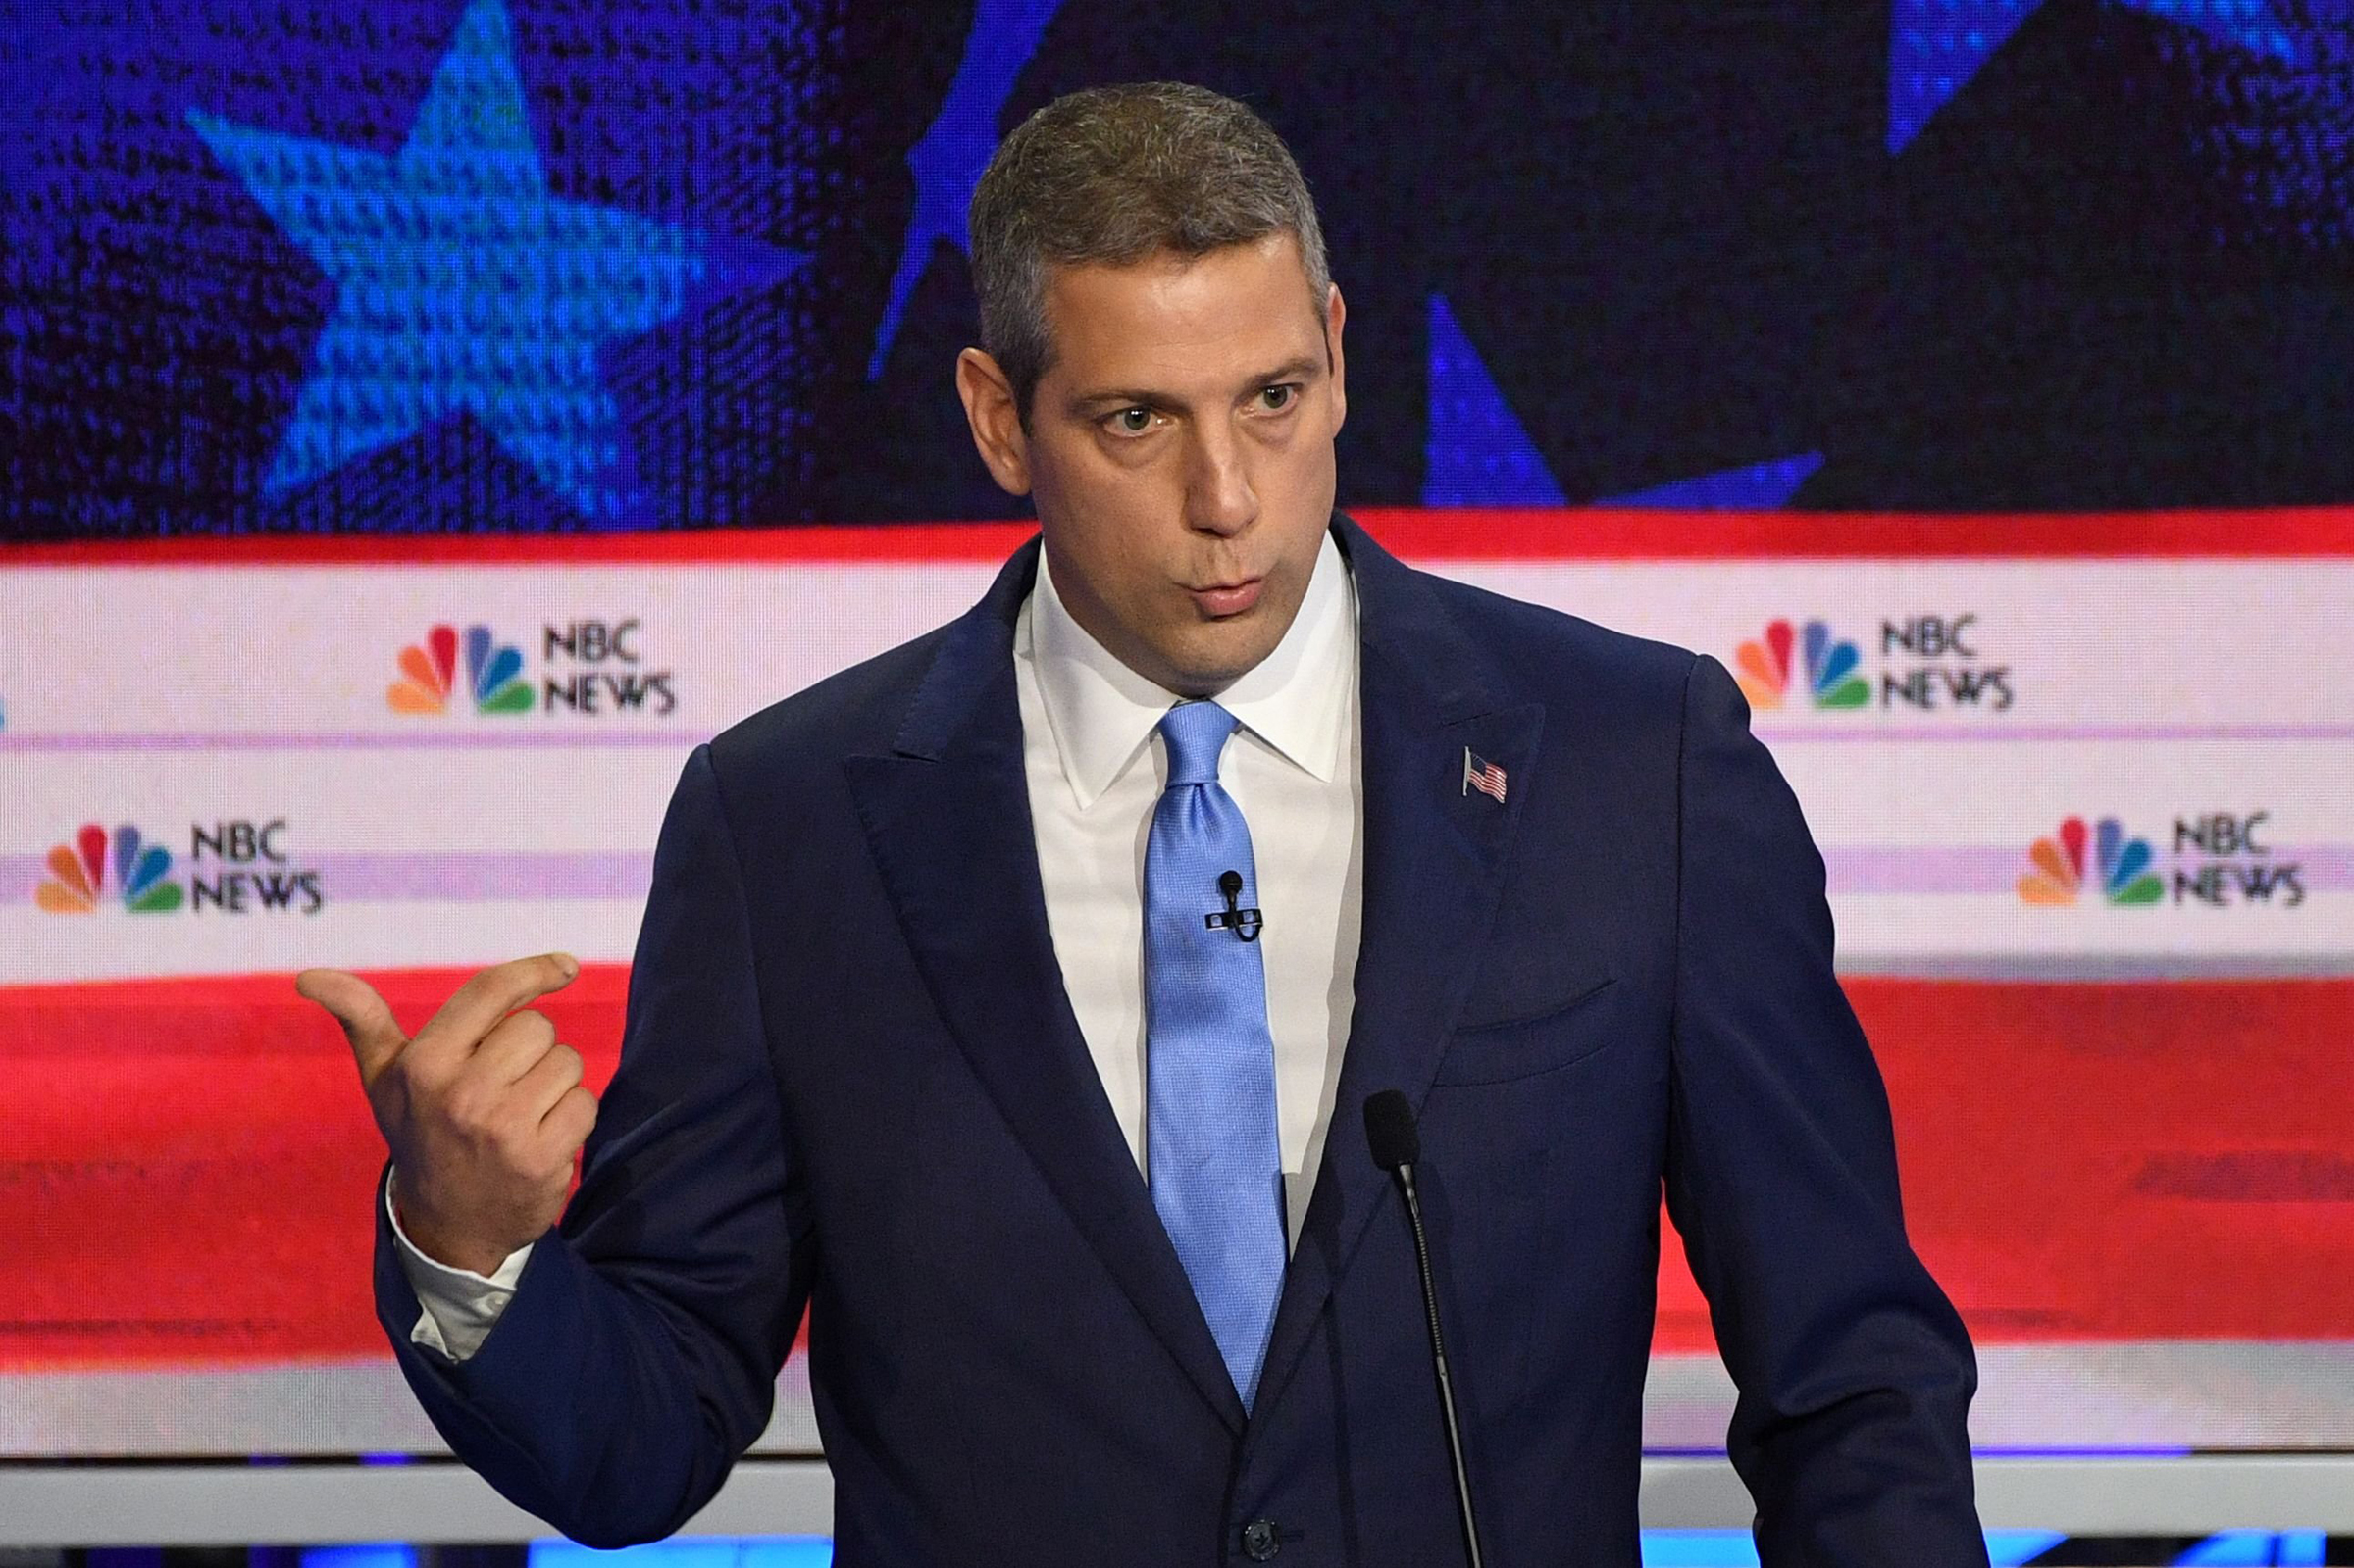 Democratic presidential hopeful US Representative for Ohio's 13th congressional district Tim Ryan speaks during the first Democratic primary debate of the 2020 presidential campaign season hosted by NBC News at the Adrienne Arsht Center for the Performing Arts in Miami, Florida, June 26, 2019.